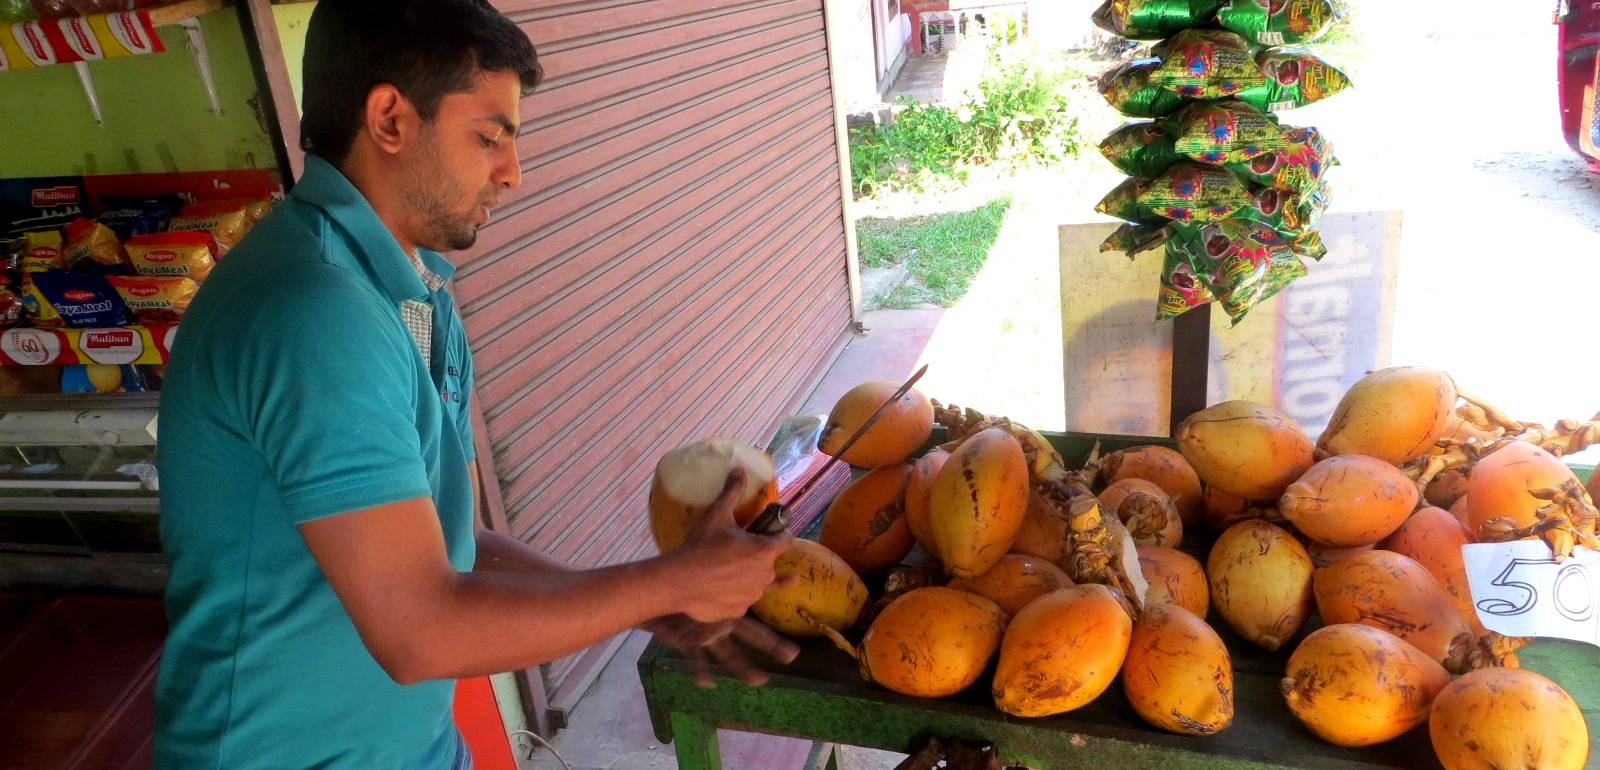 king-coconut-koenigskokosnuss-sri-lanka-kandy